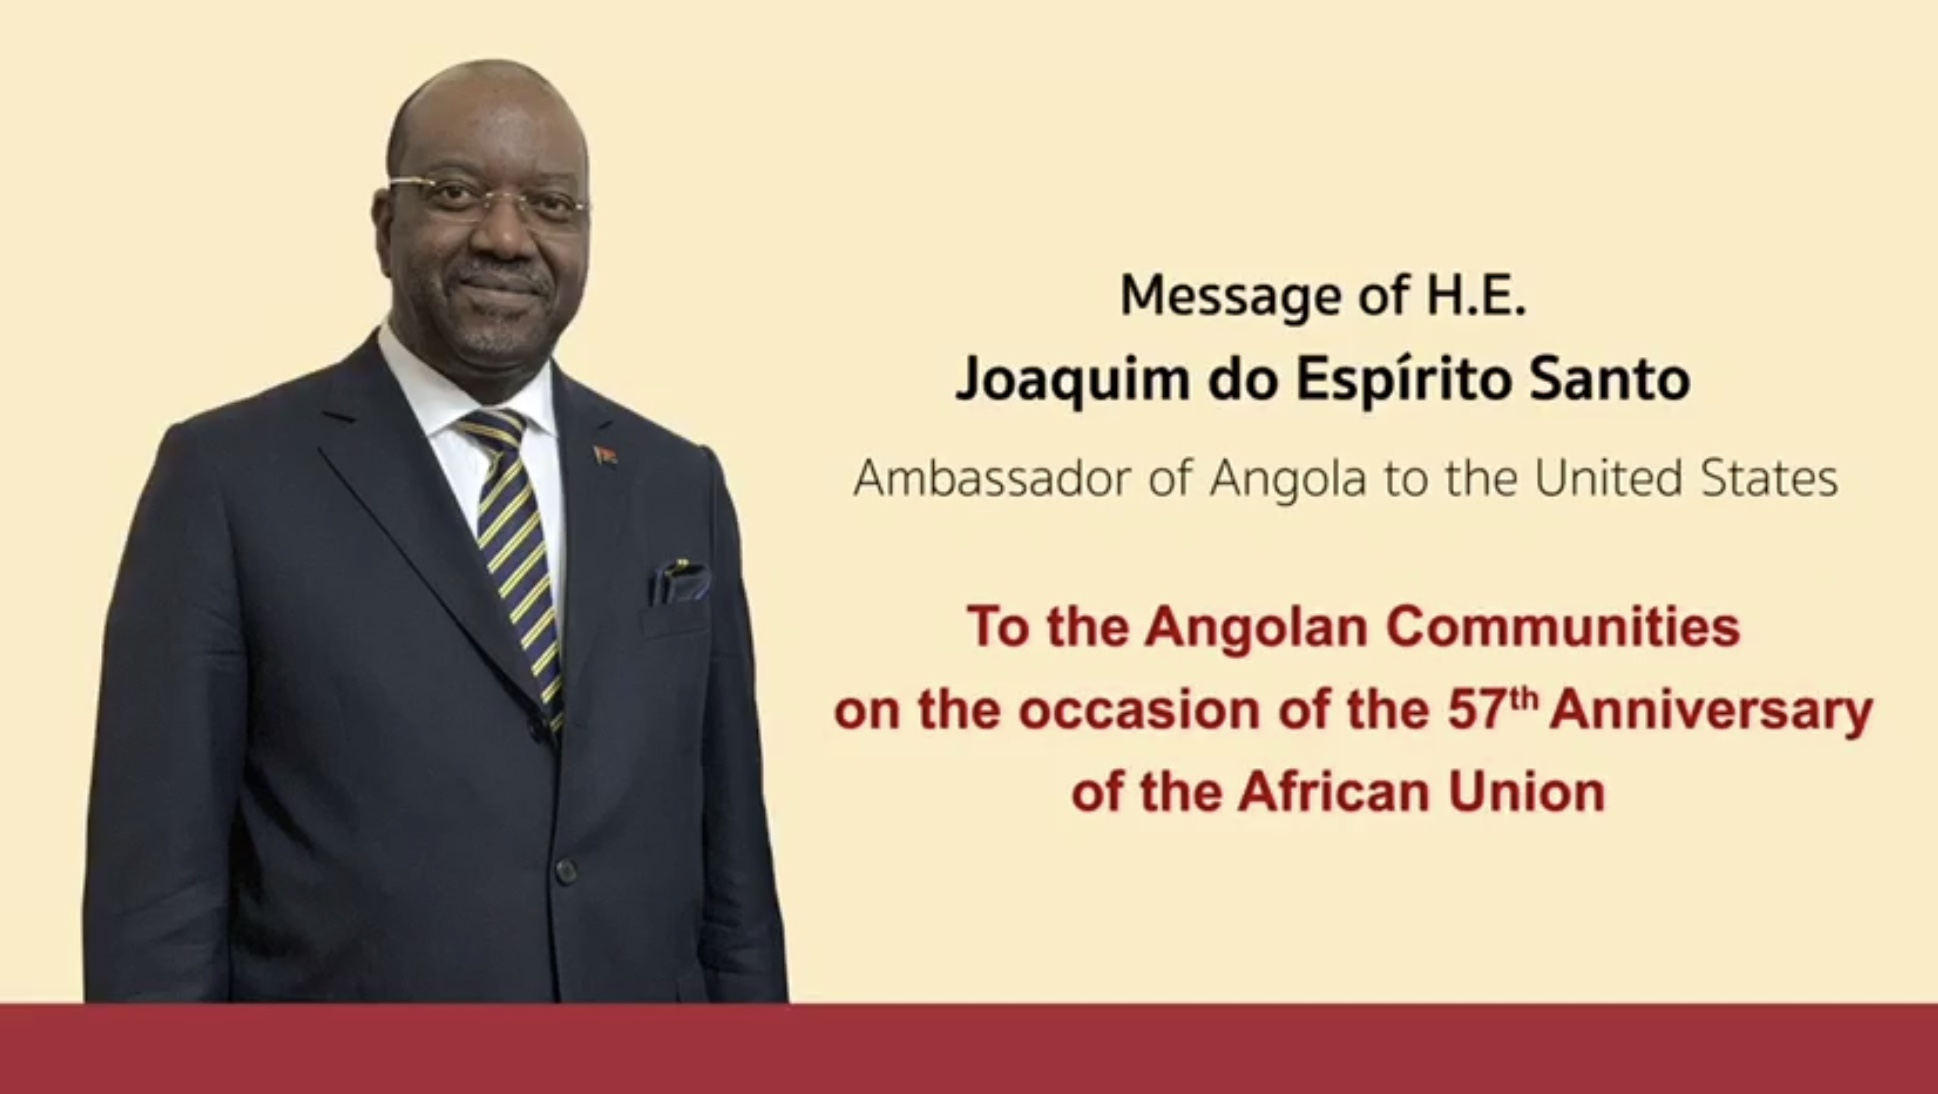 JOAQUIM DO ESPIRITO SANTO, AMBASSADOR OF ANGOLA IN THE US